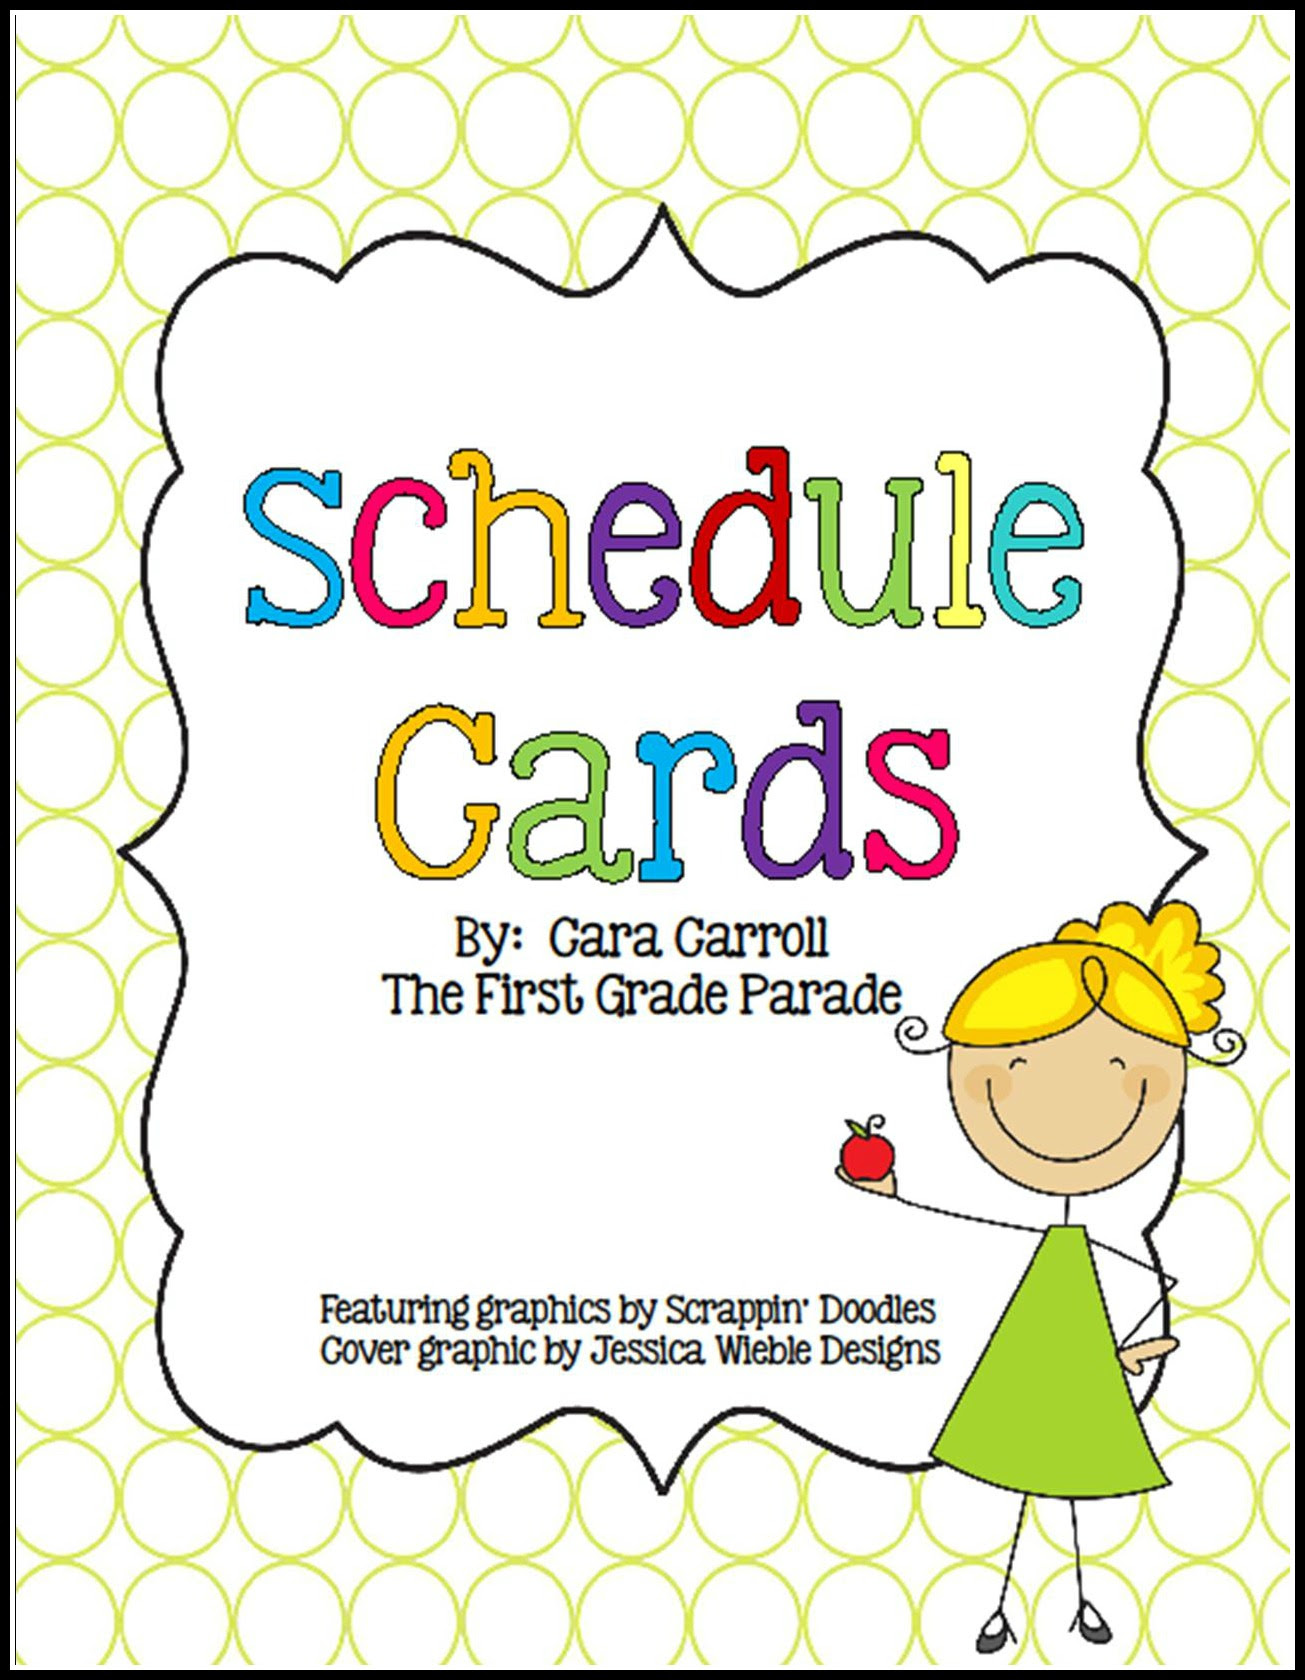 6 Best Images of Printable Daily Schedule Cards - Printable ...